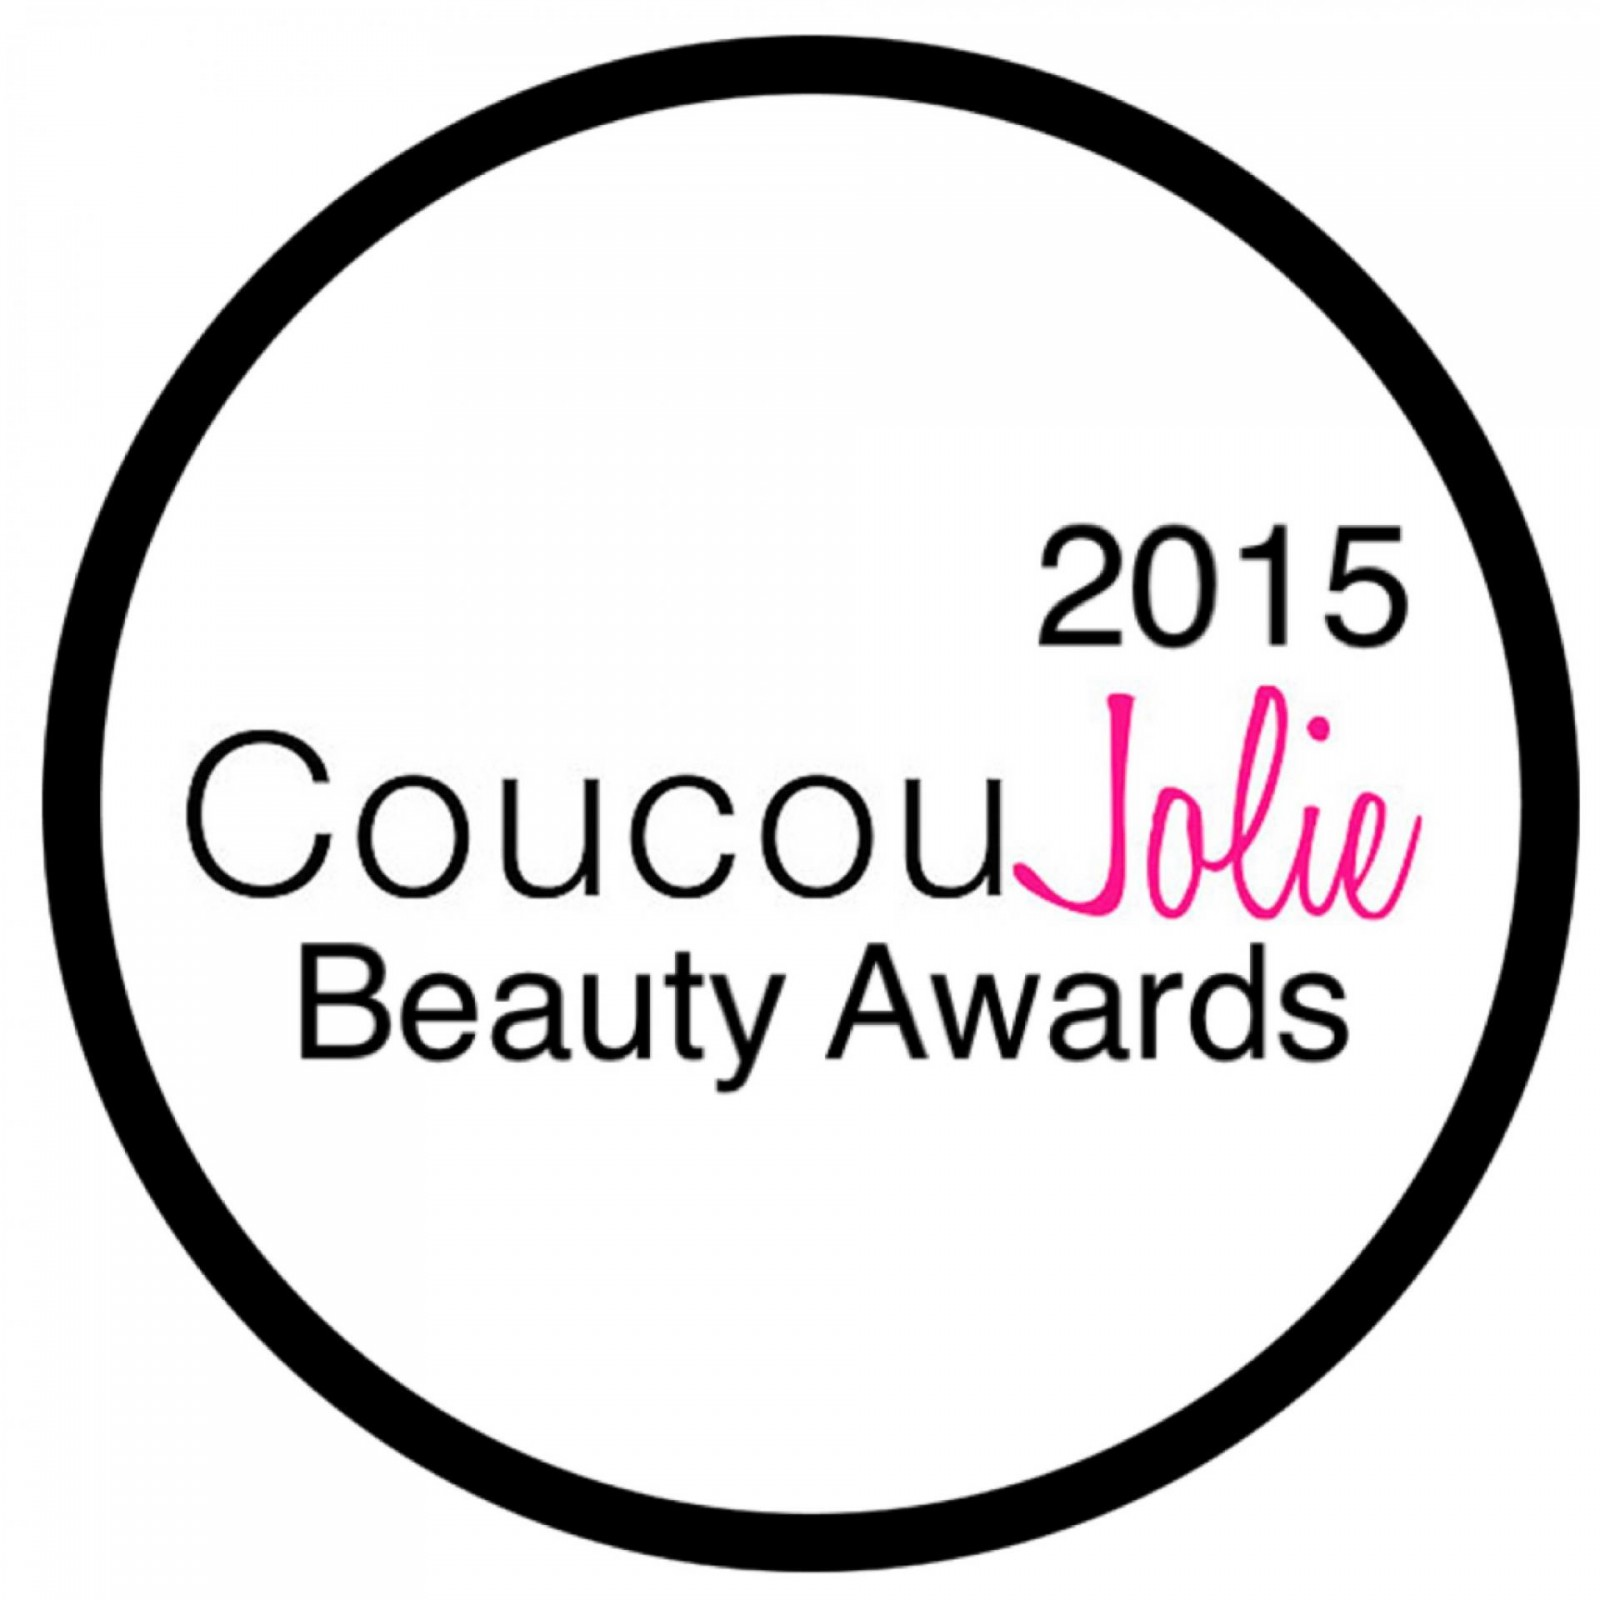 Coucou Jolie Beauty Awards